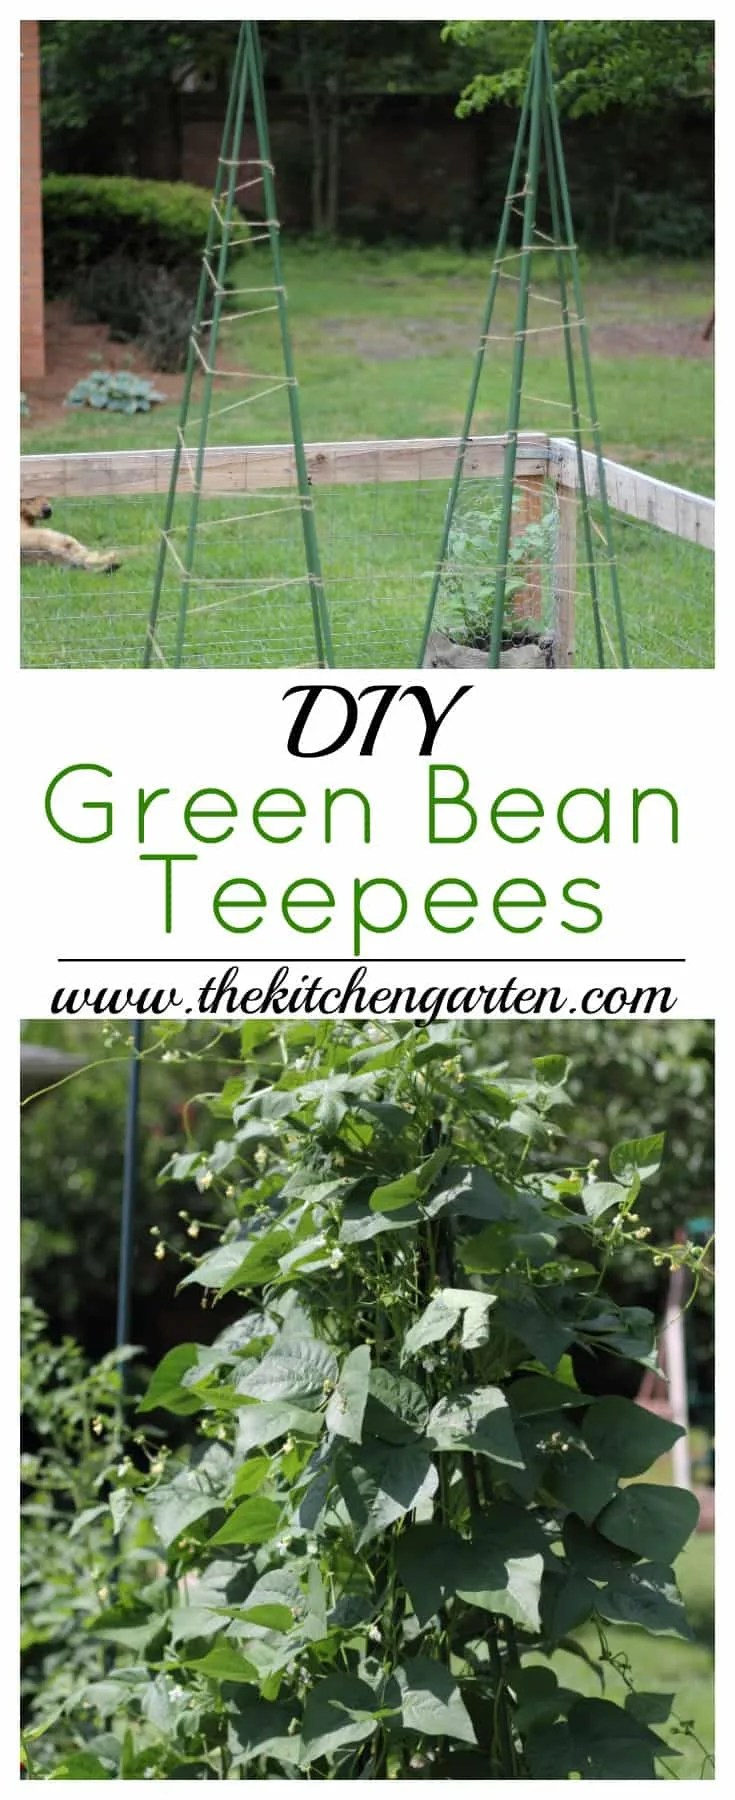 No room in the garden? Grow your beans vertically using these Easy DIY Green Bean Teepees! Beauty and function in your garden space!